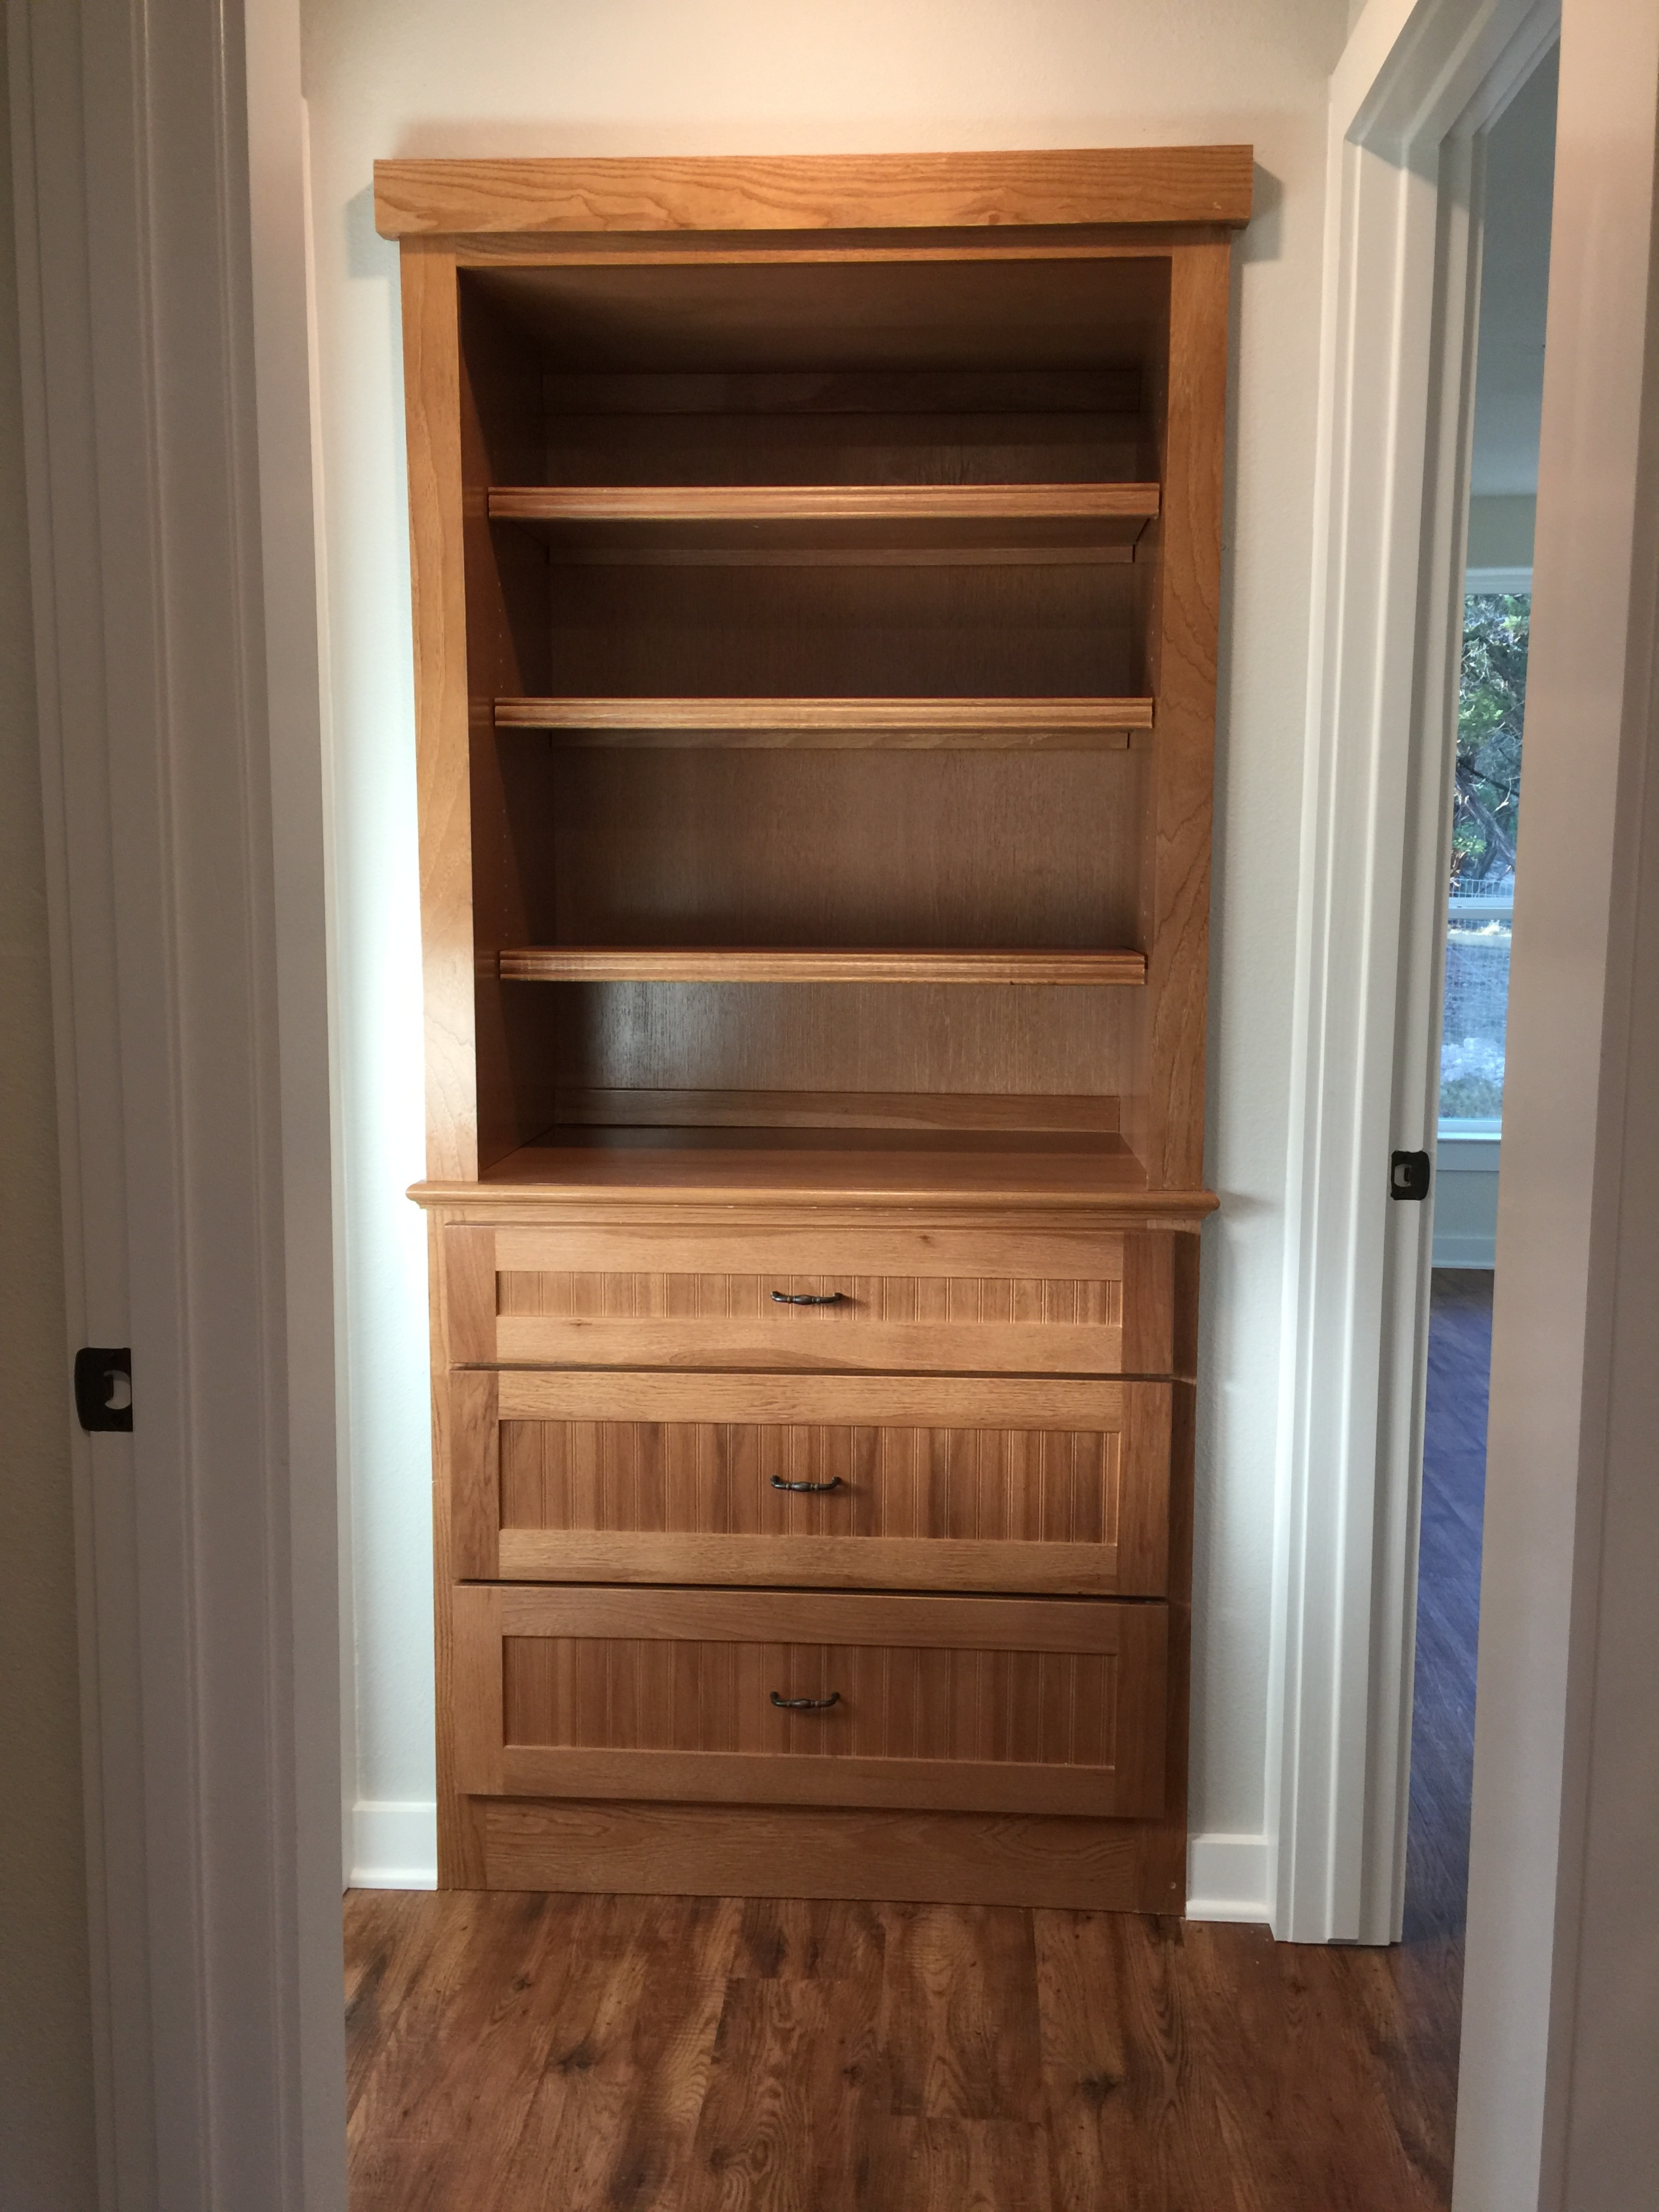 910 PLL - Finished Hallway cabinet.JPG